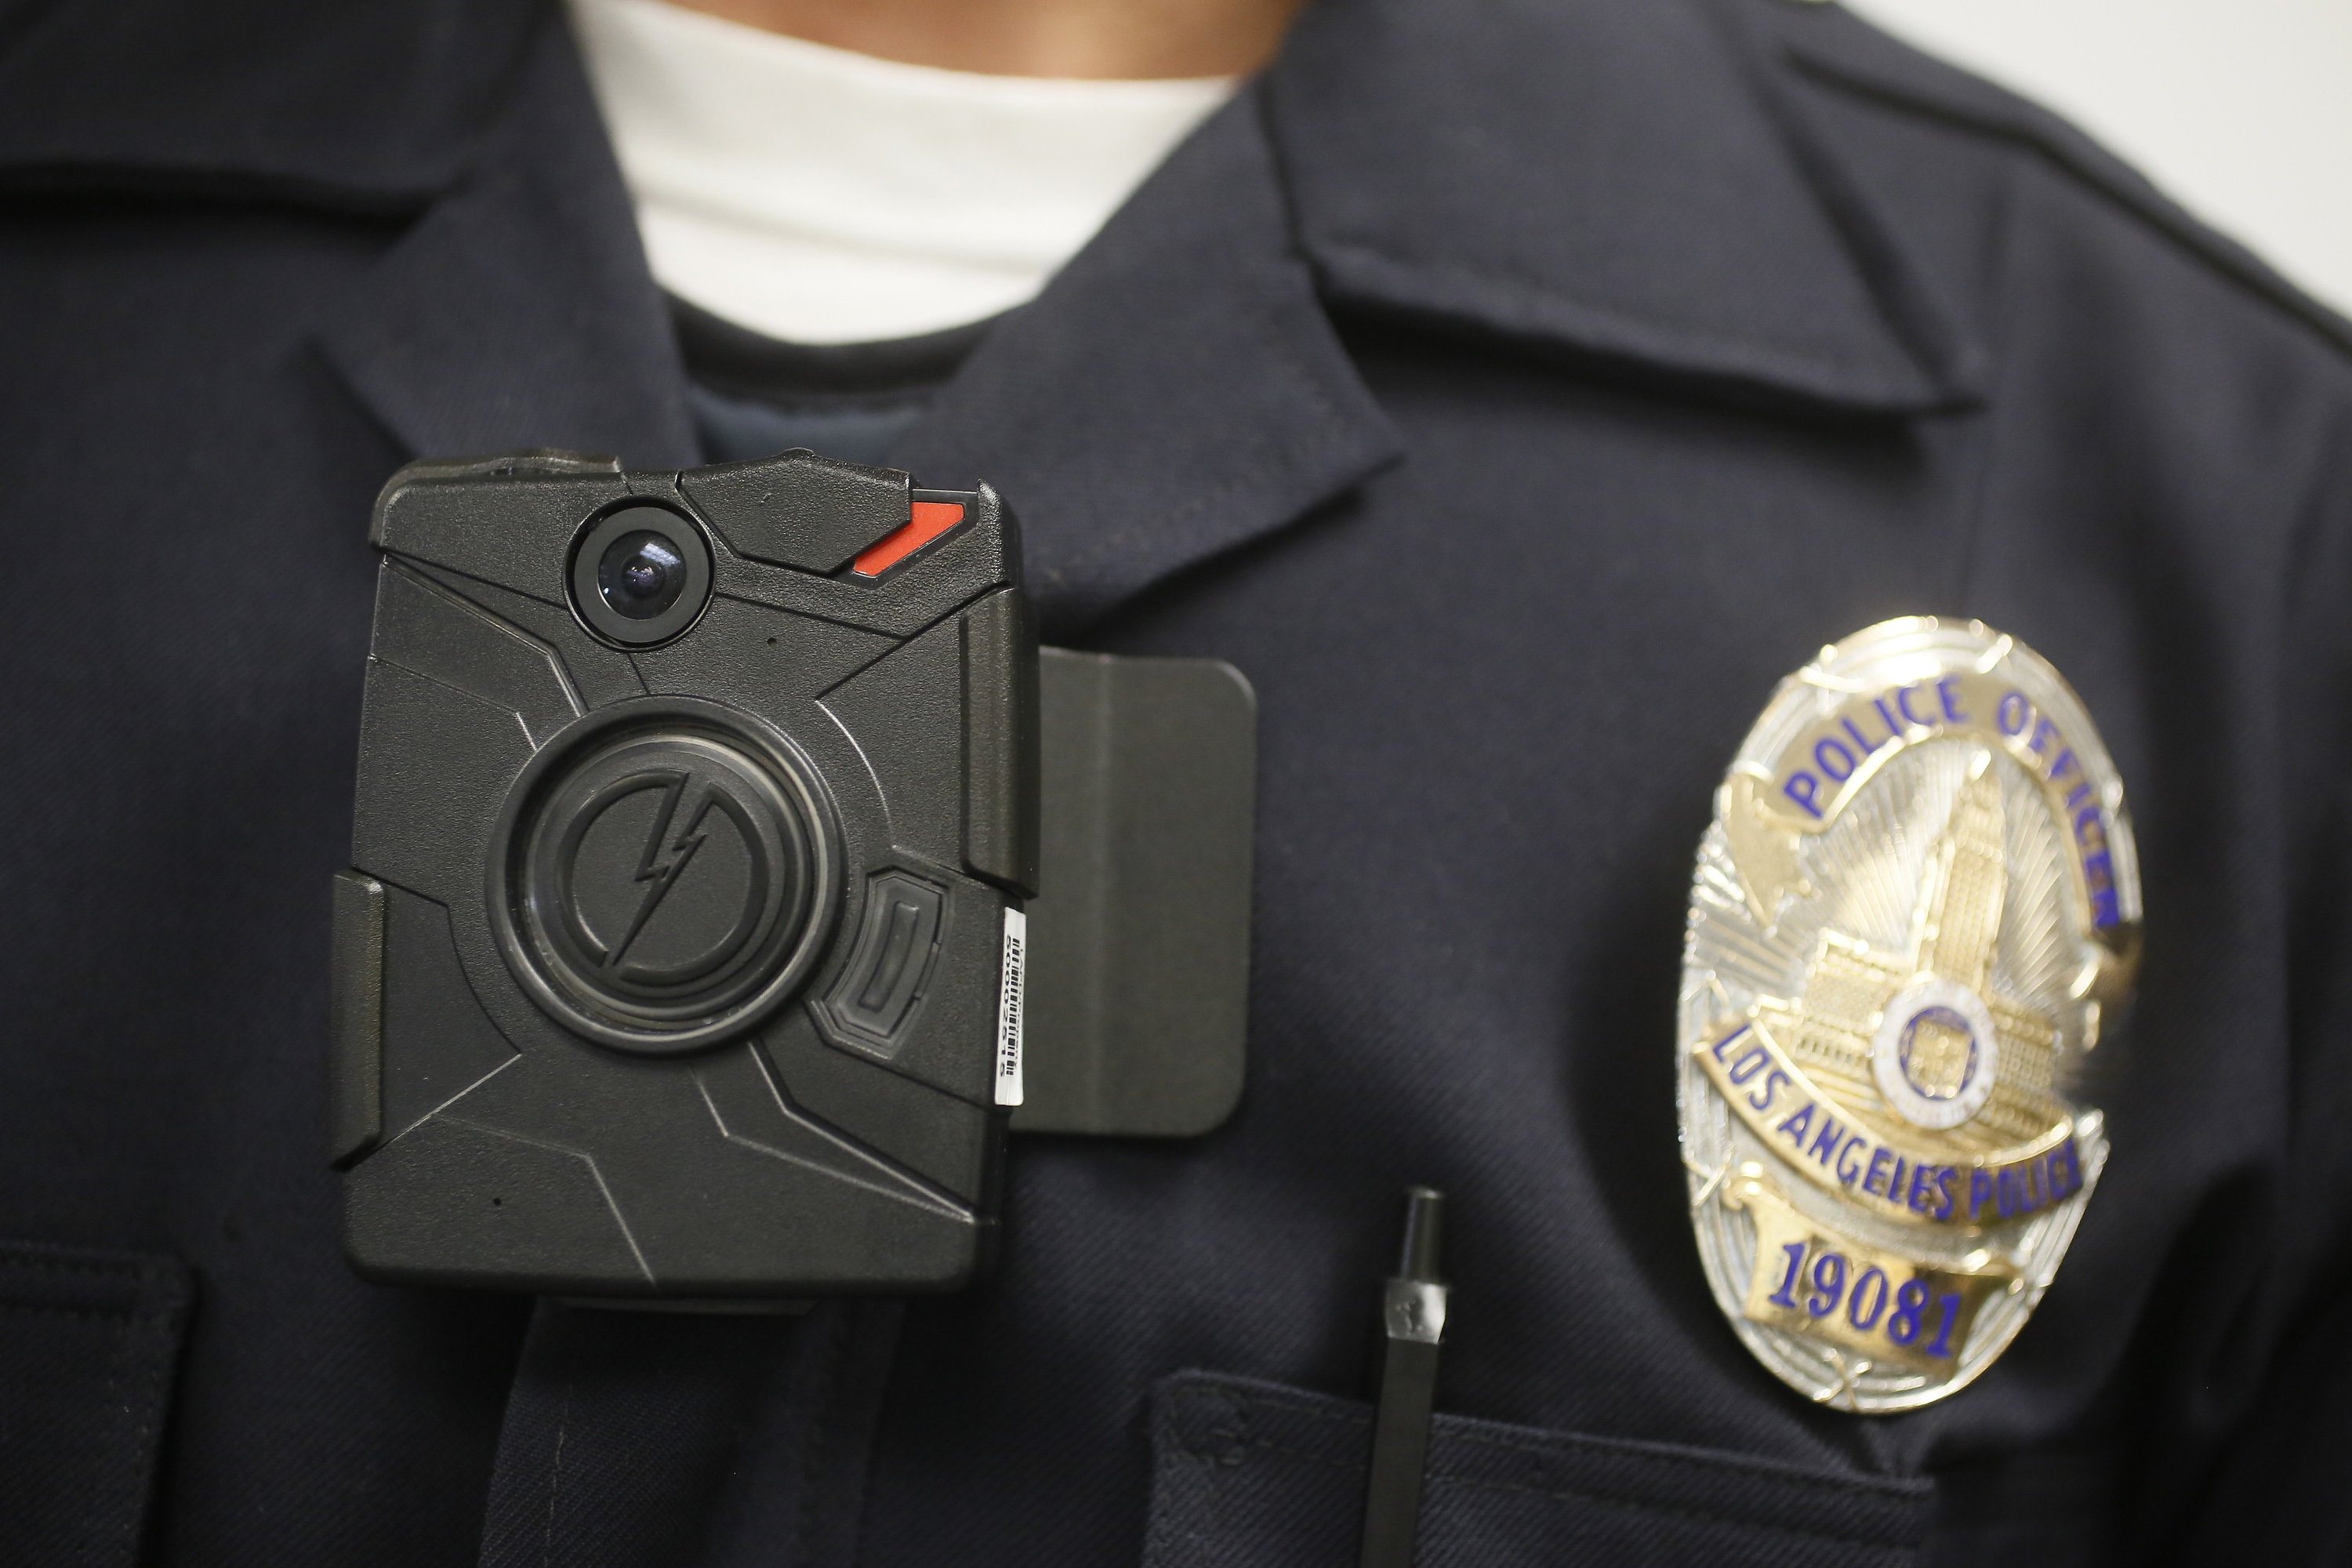 D.C. works to balance privacy, transparency with police body cameras